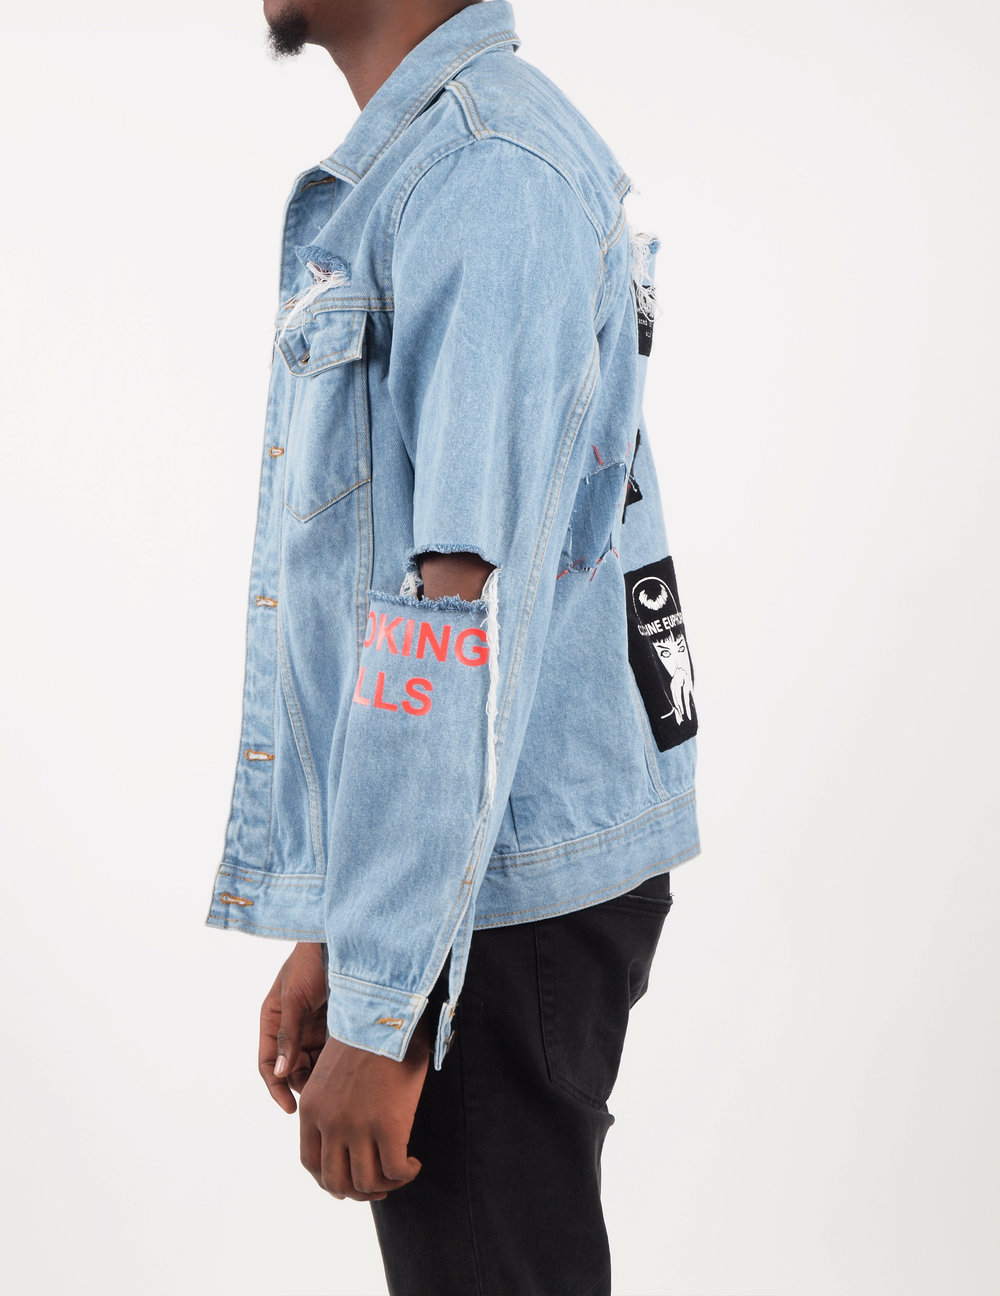 old blue denim jacket side.jpg